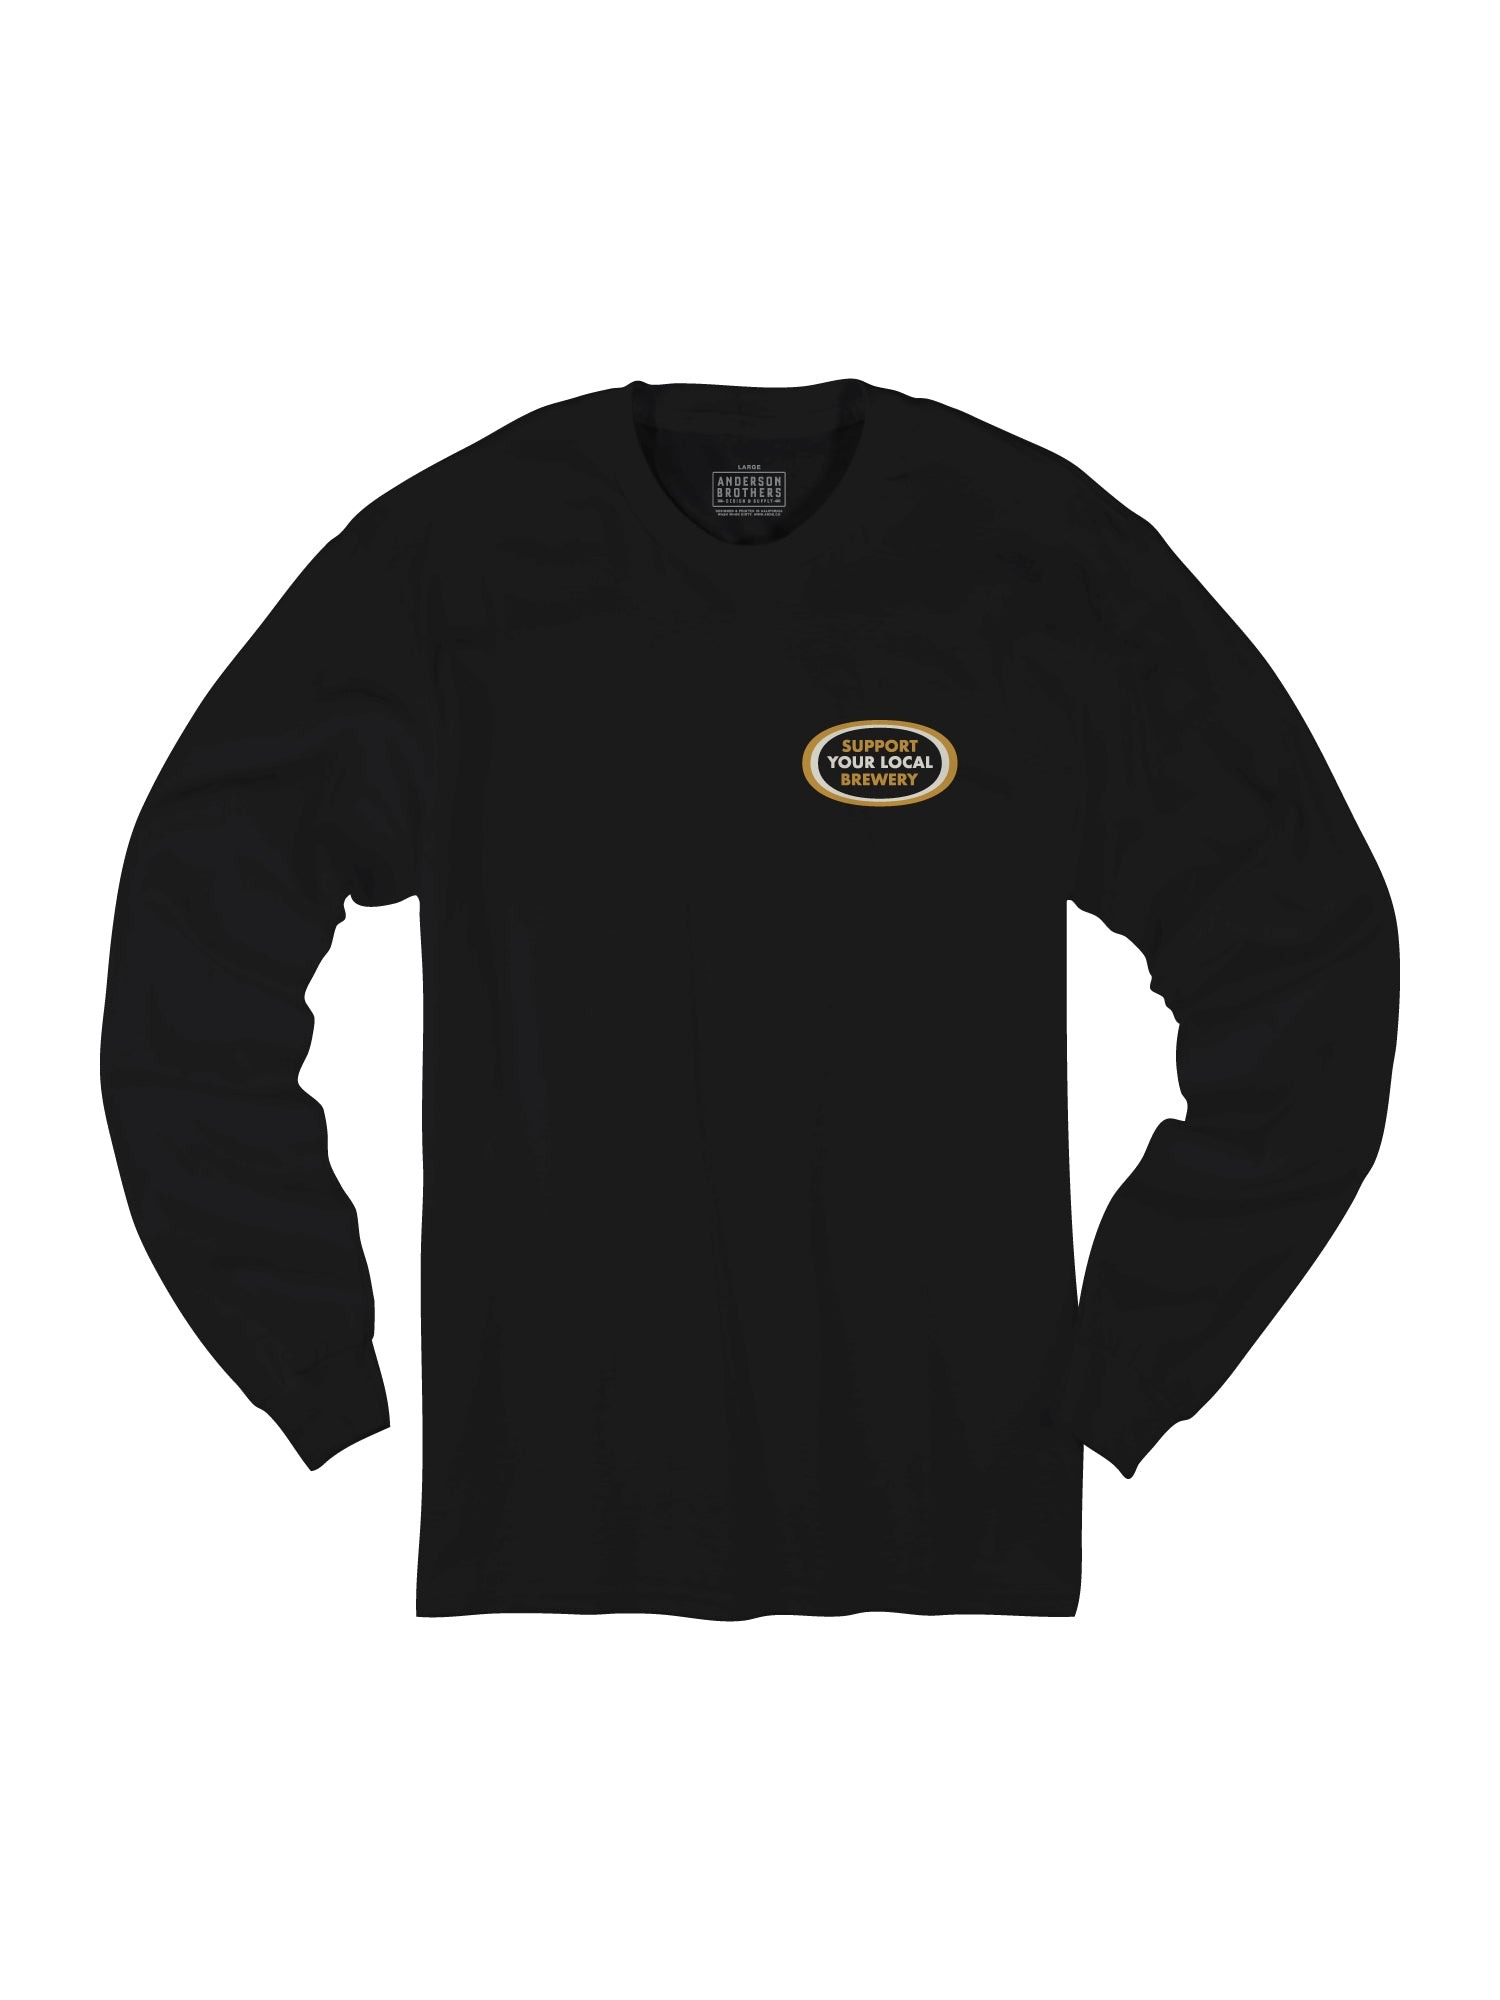 SUPPORT YOUR LOCAL BREWERY L/S - BLACK - Tankfarm & Co.